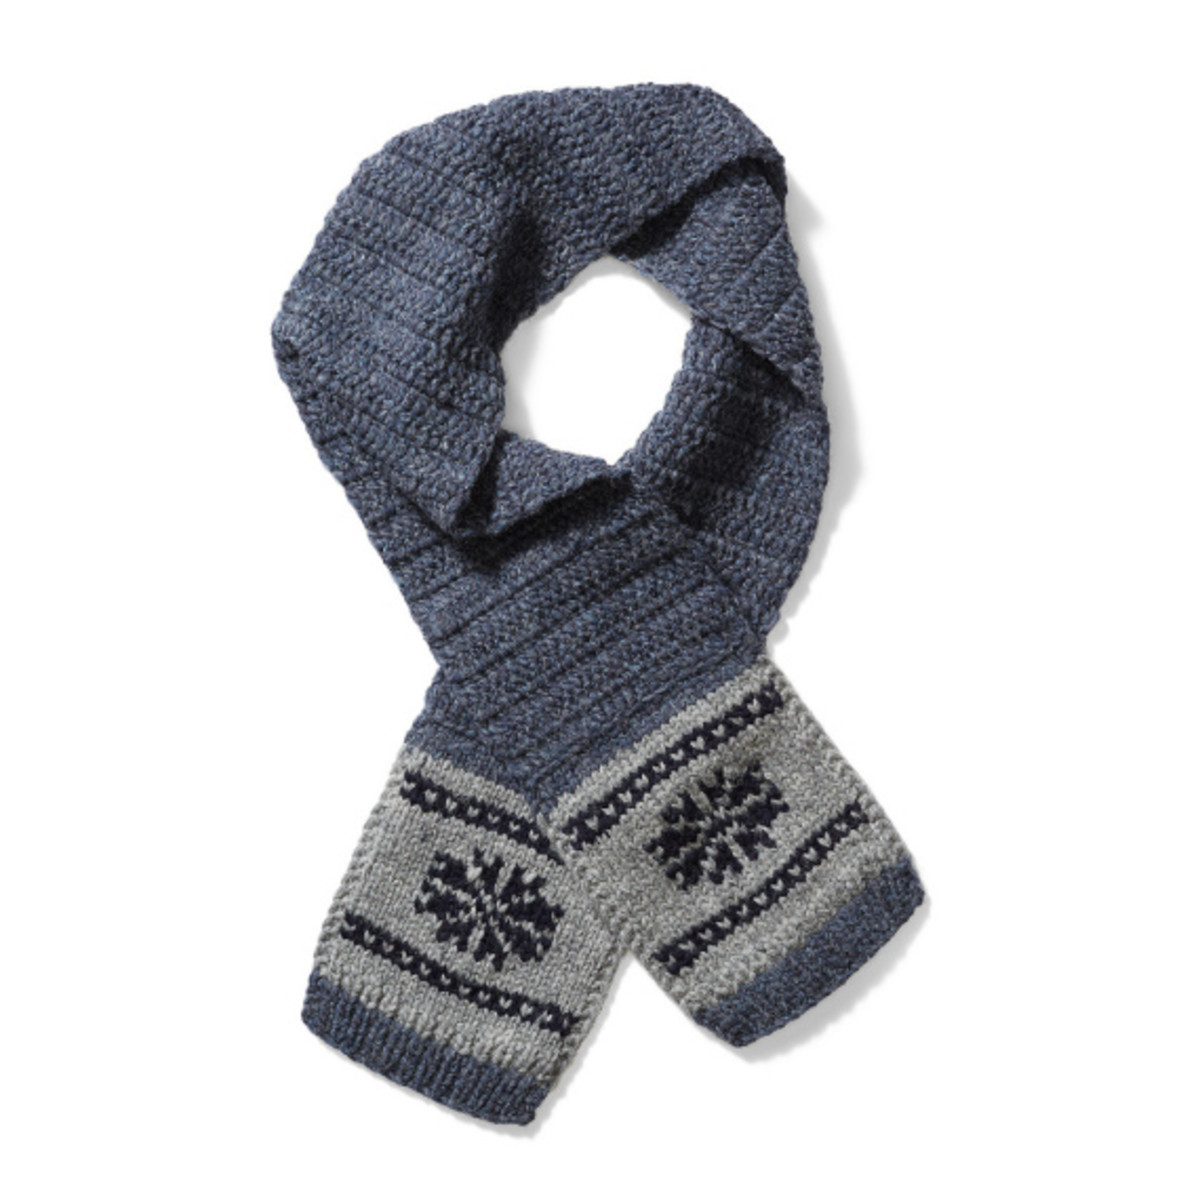 filson-fall-winter-2014-cowichan-knit-collection-10